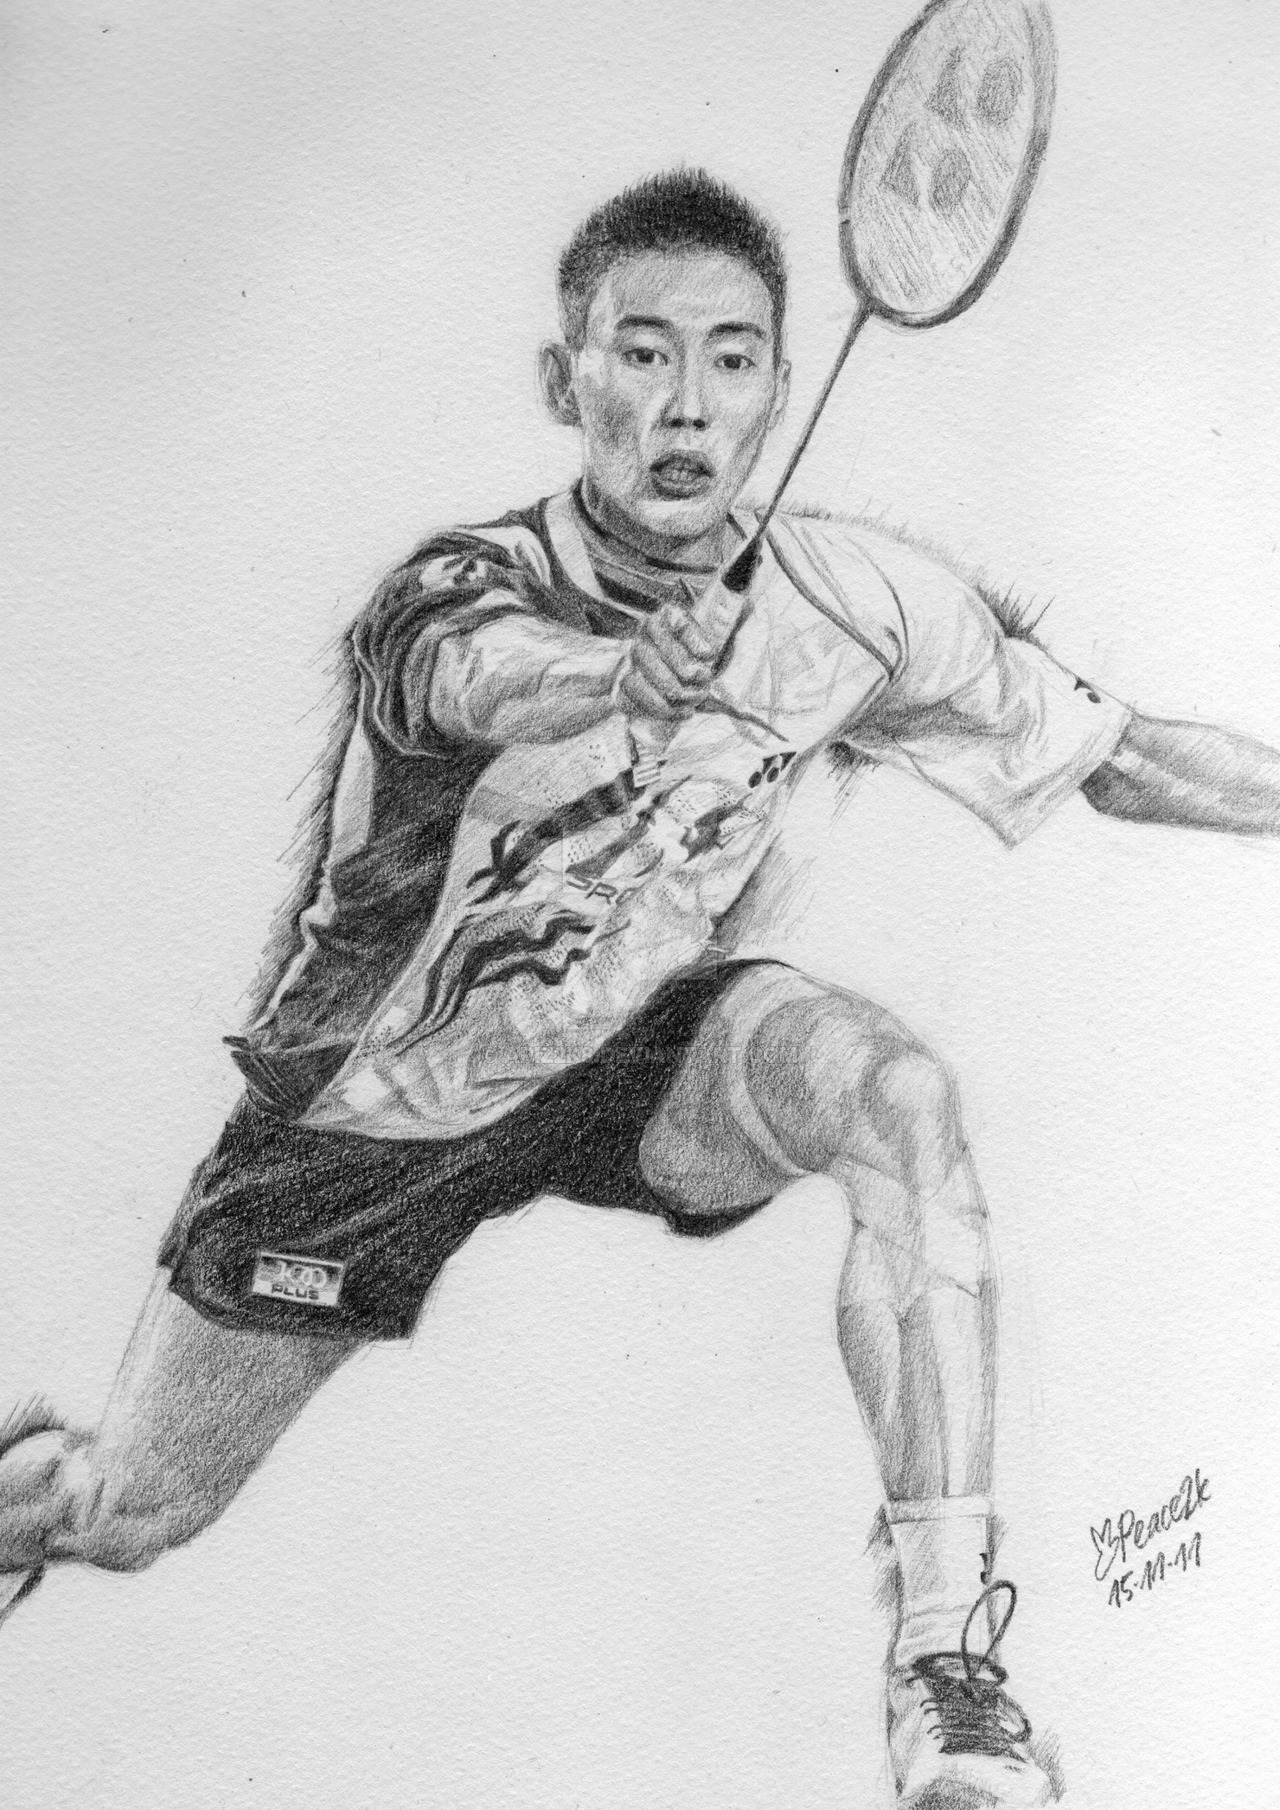 Lee chong wei clipart graphic royalty free library Lee Chong Wei by apiz2k8 on DeviantArt graphic royalty free library